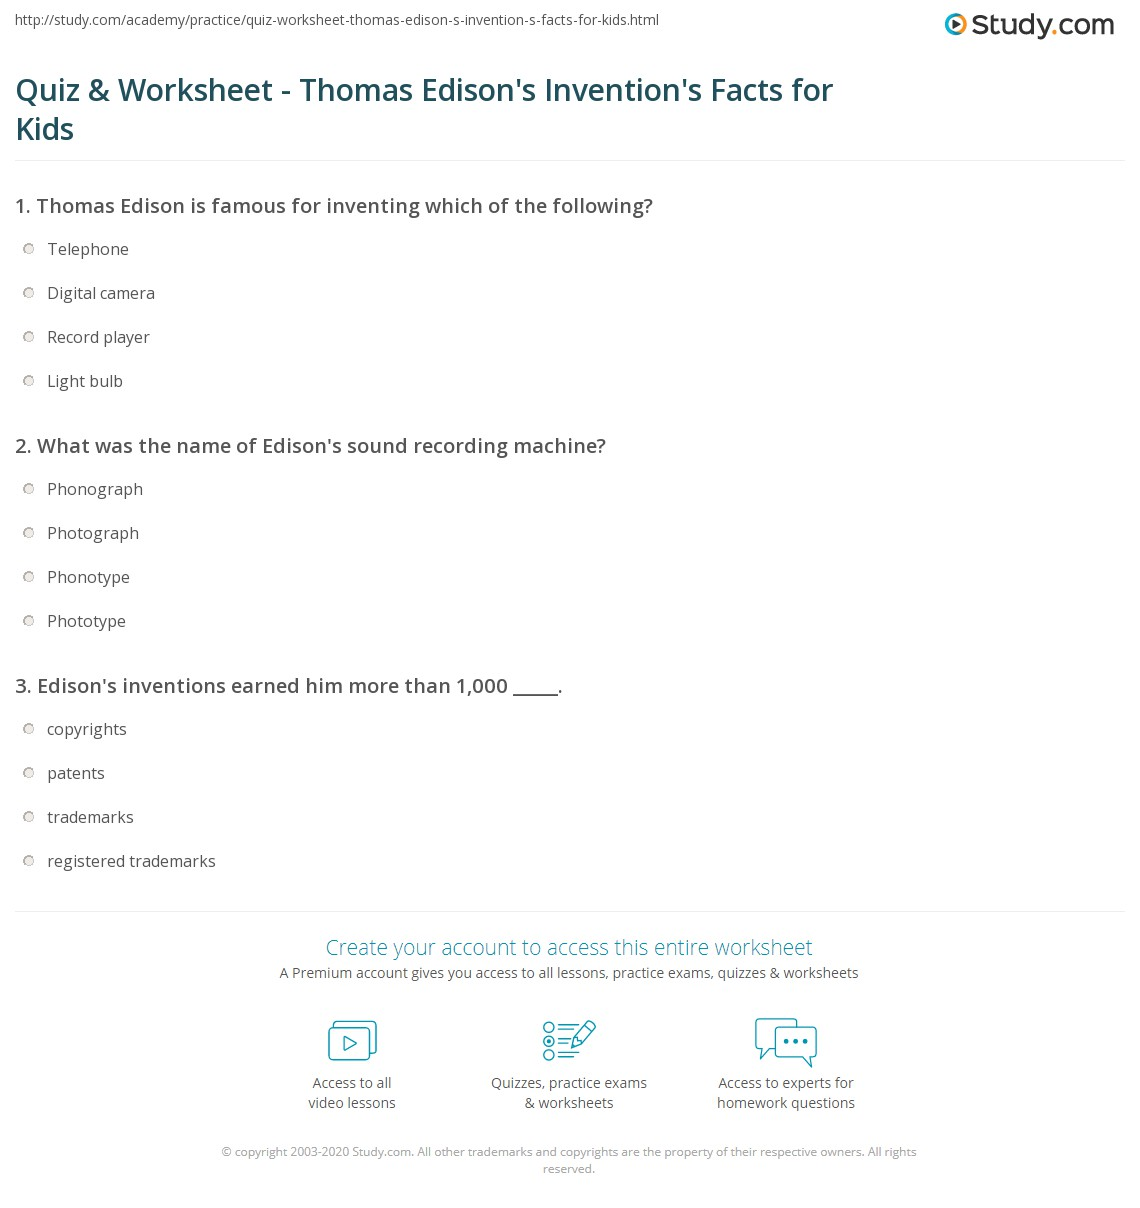 Quiz & Worksheet - Thomas Edison's Invention's Facts for Kids   Study ...